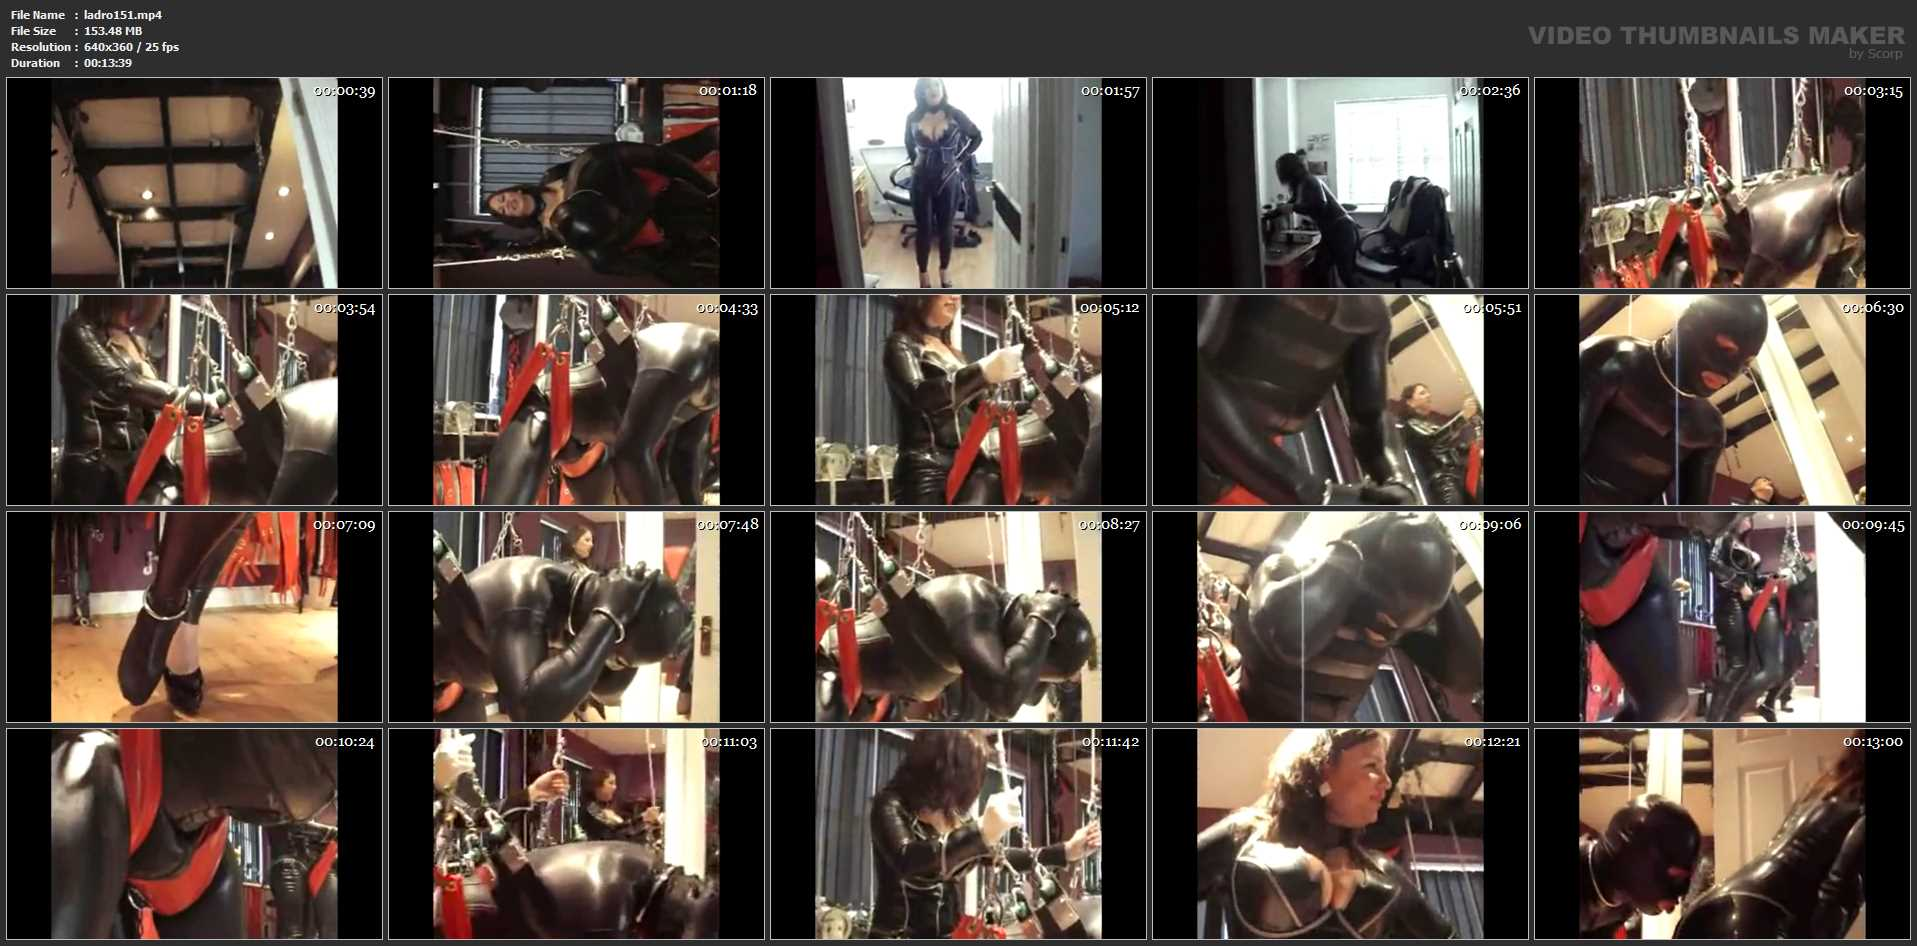 Lady Rochester In Scene: A Good Buggering - LADYROCHESTER - LQ/360p/MP4